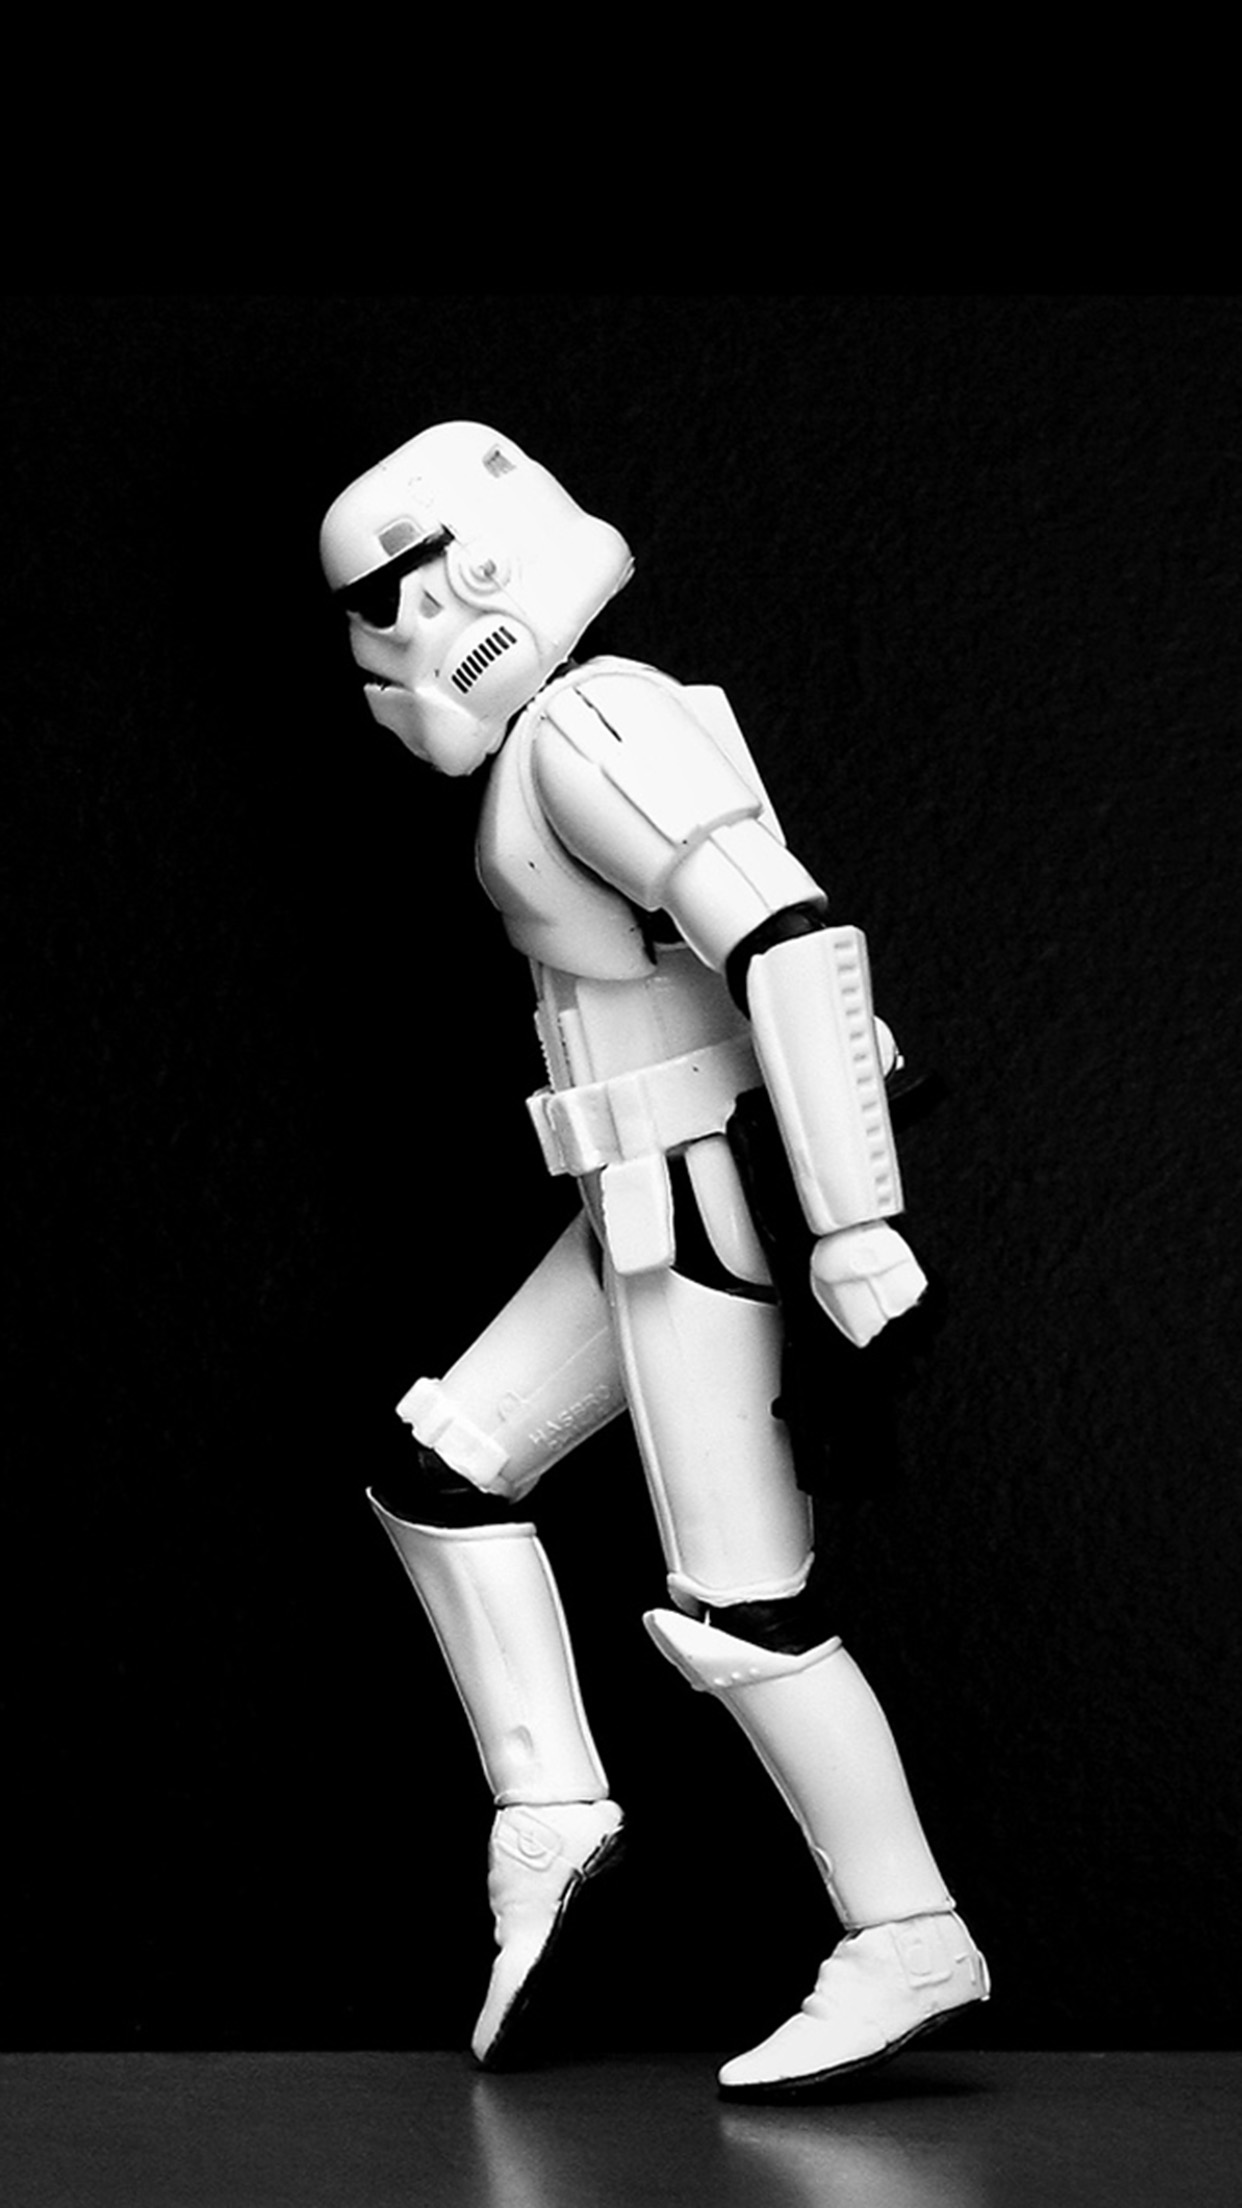 Star Wars Michael Jackson Moonwalk 3Wallpapers iPhone Parallax Star Wars: Michael Jackson Moonwalk